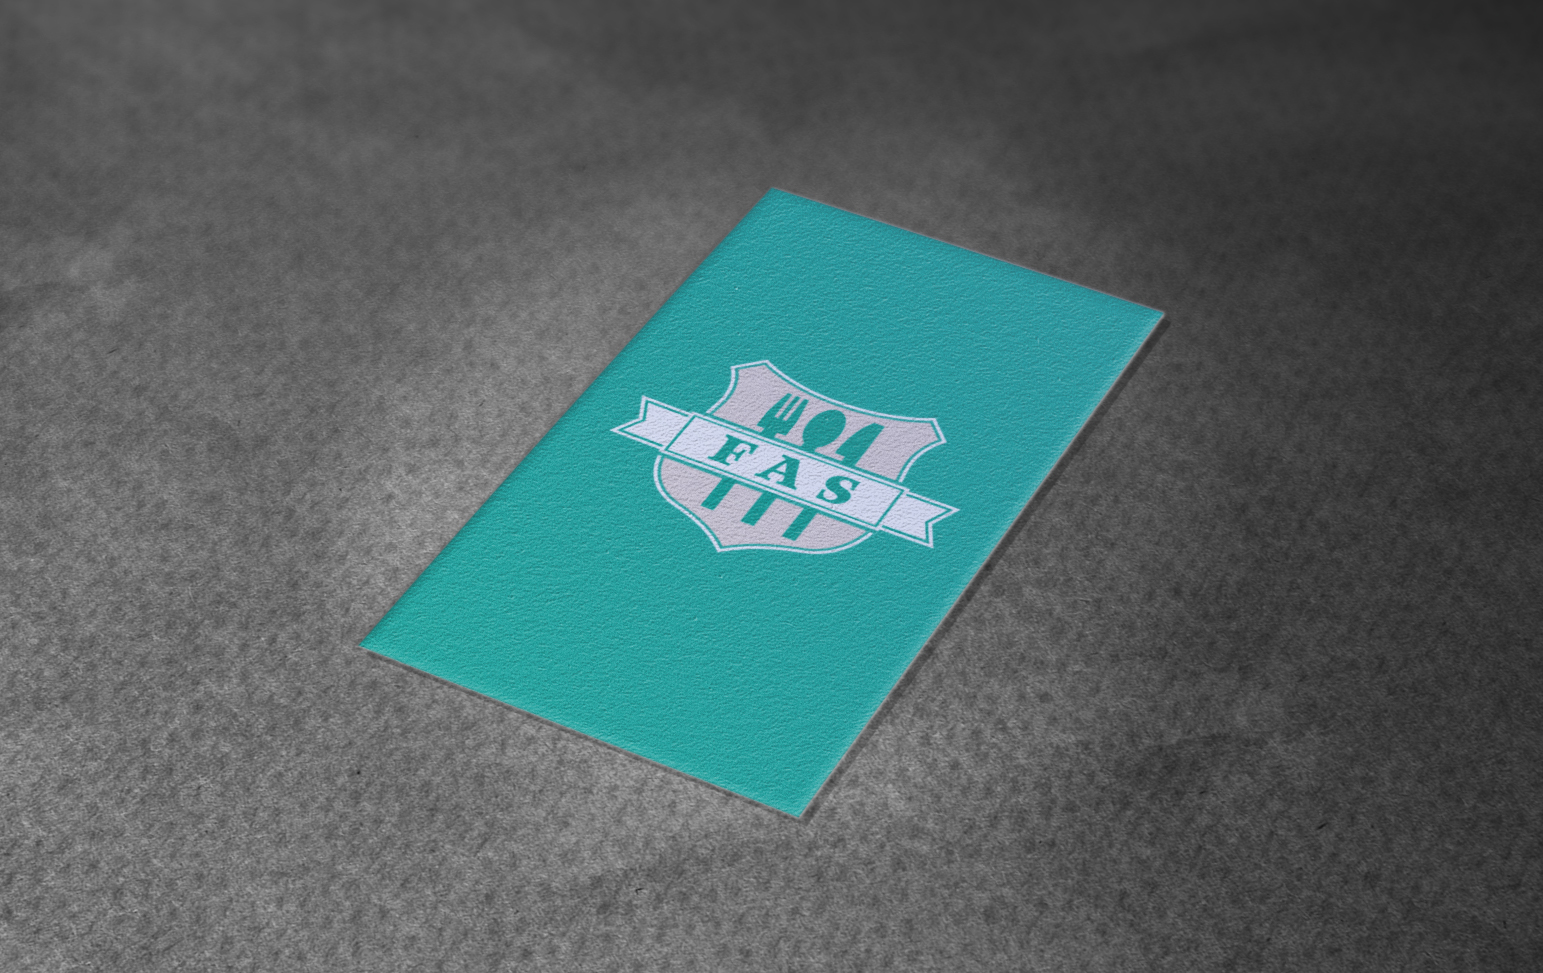 Food Allergy Shield business cards designed by Xoil Design